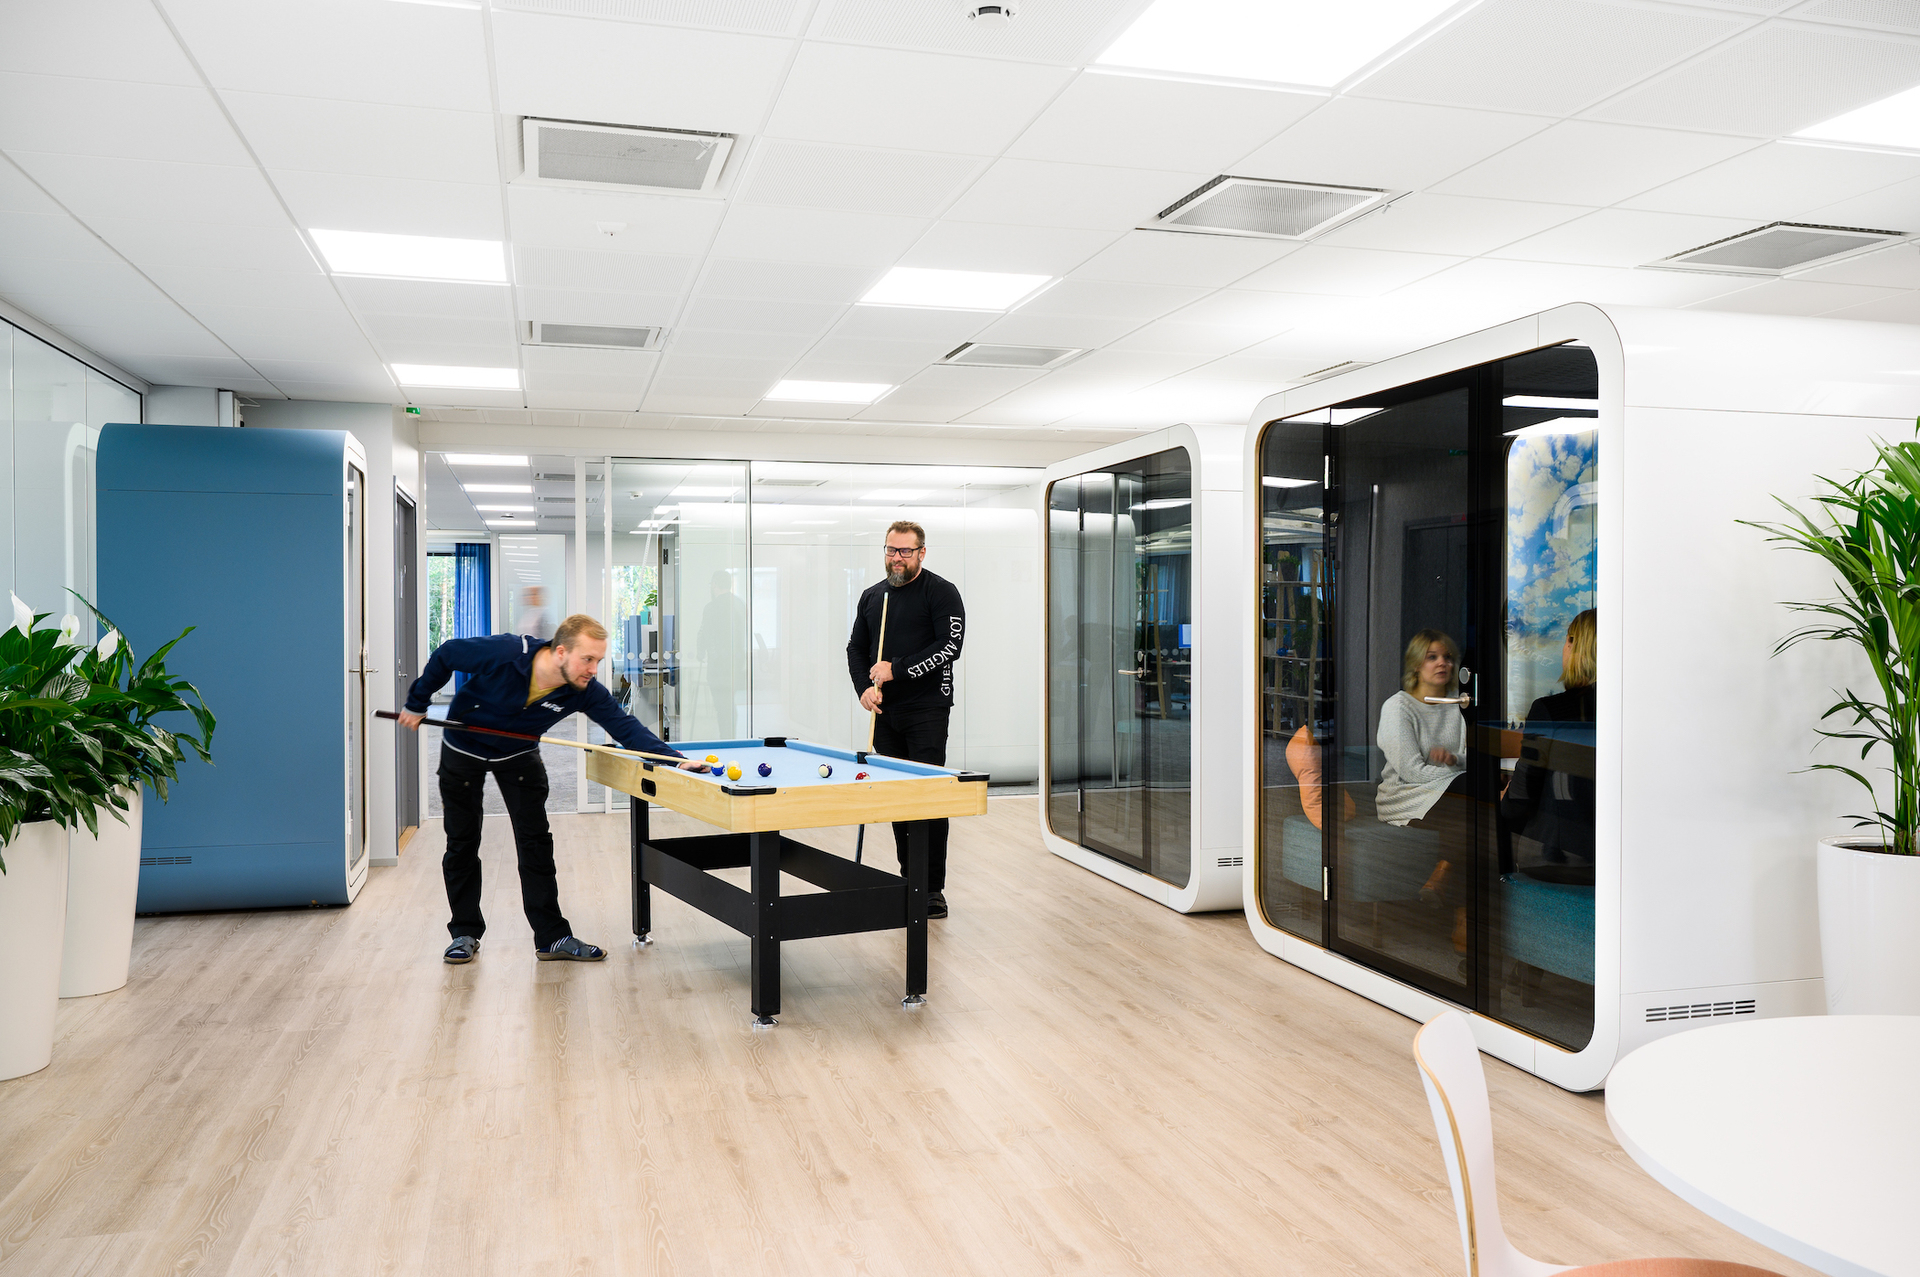 Patented innovations make Framery office pods a happy place to be. Inside it's always quiet and the air is always fresh.